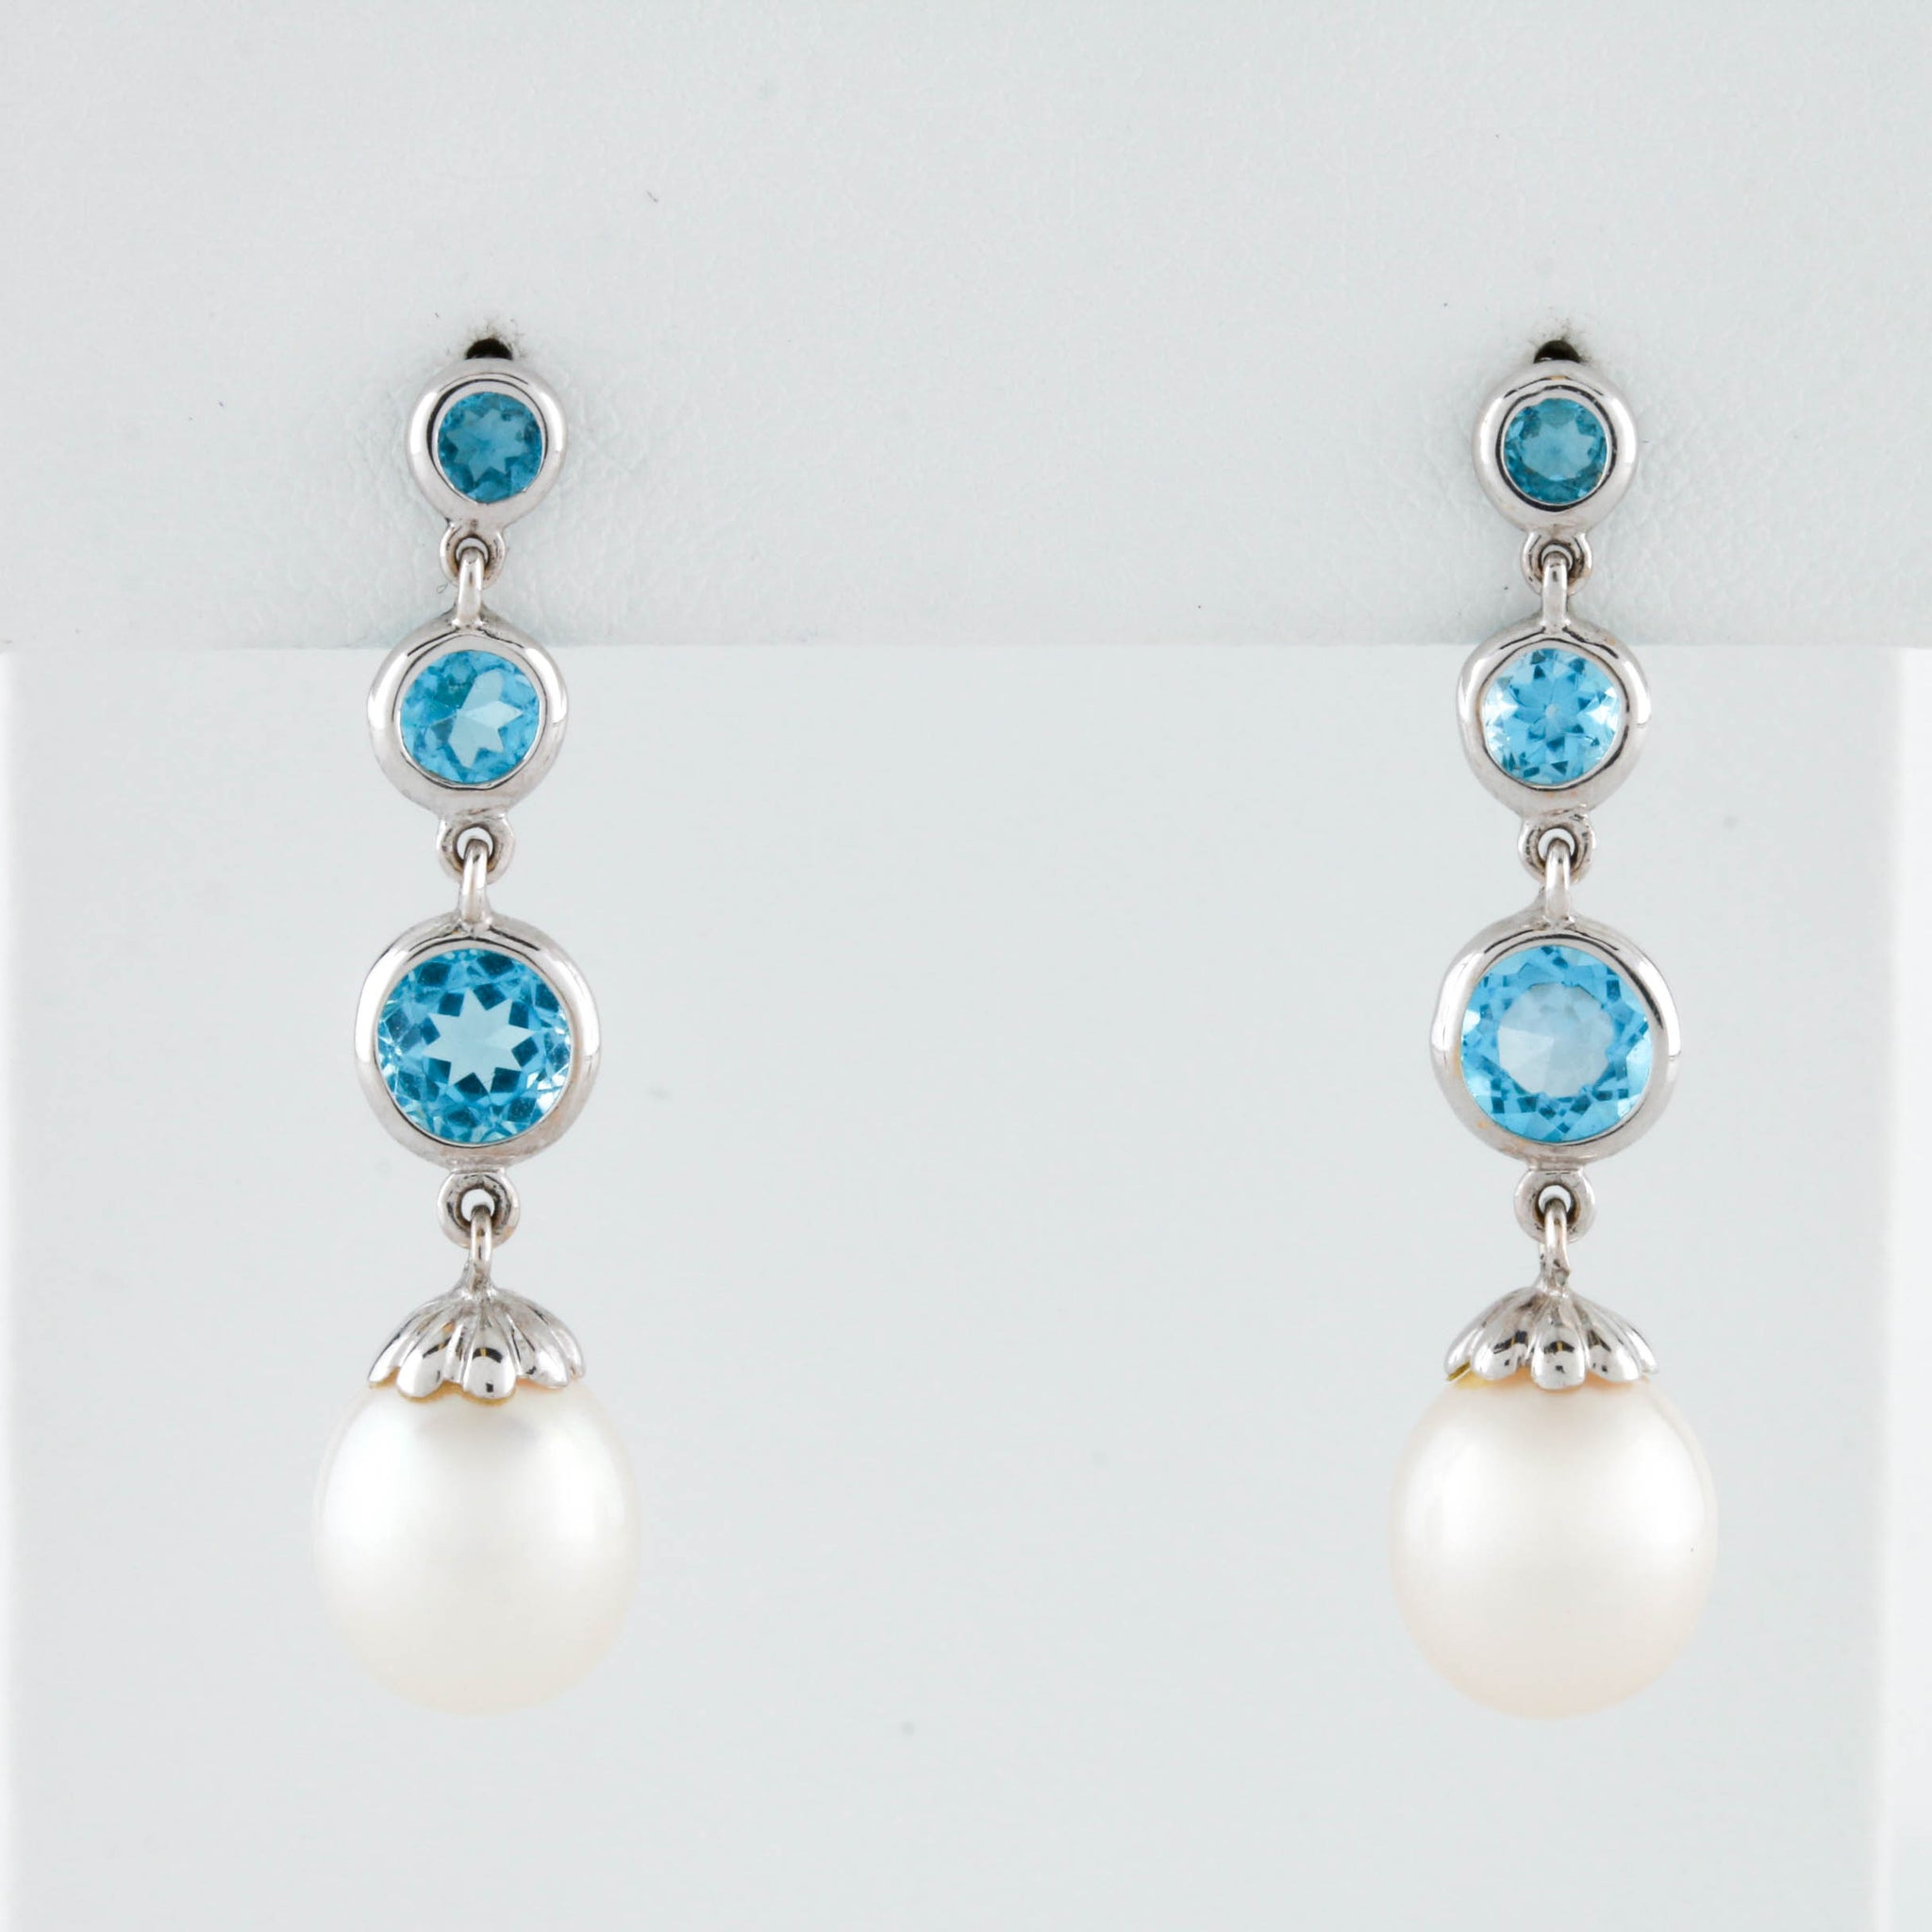 *SOLD* Blue Topaz and Pearls in White Gold Earrings - Sindur